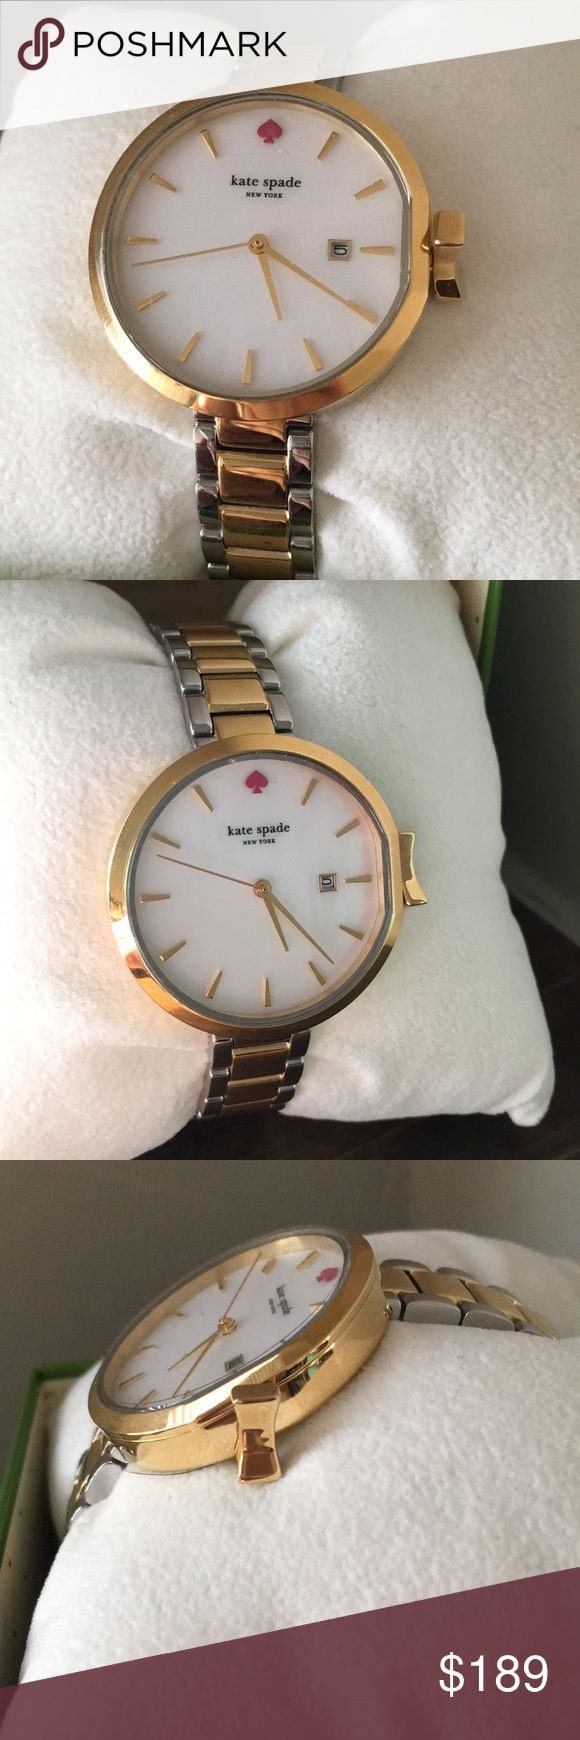 Kate Spade two tone silver & gold watch KSW1338 New in box with tags attached! Kate Spade silver and gold two tone stainless steel link watch. Style KSW1338. Round dial with date window. Open to offers! No trades! kate spade Accessories Watches